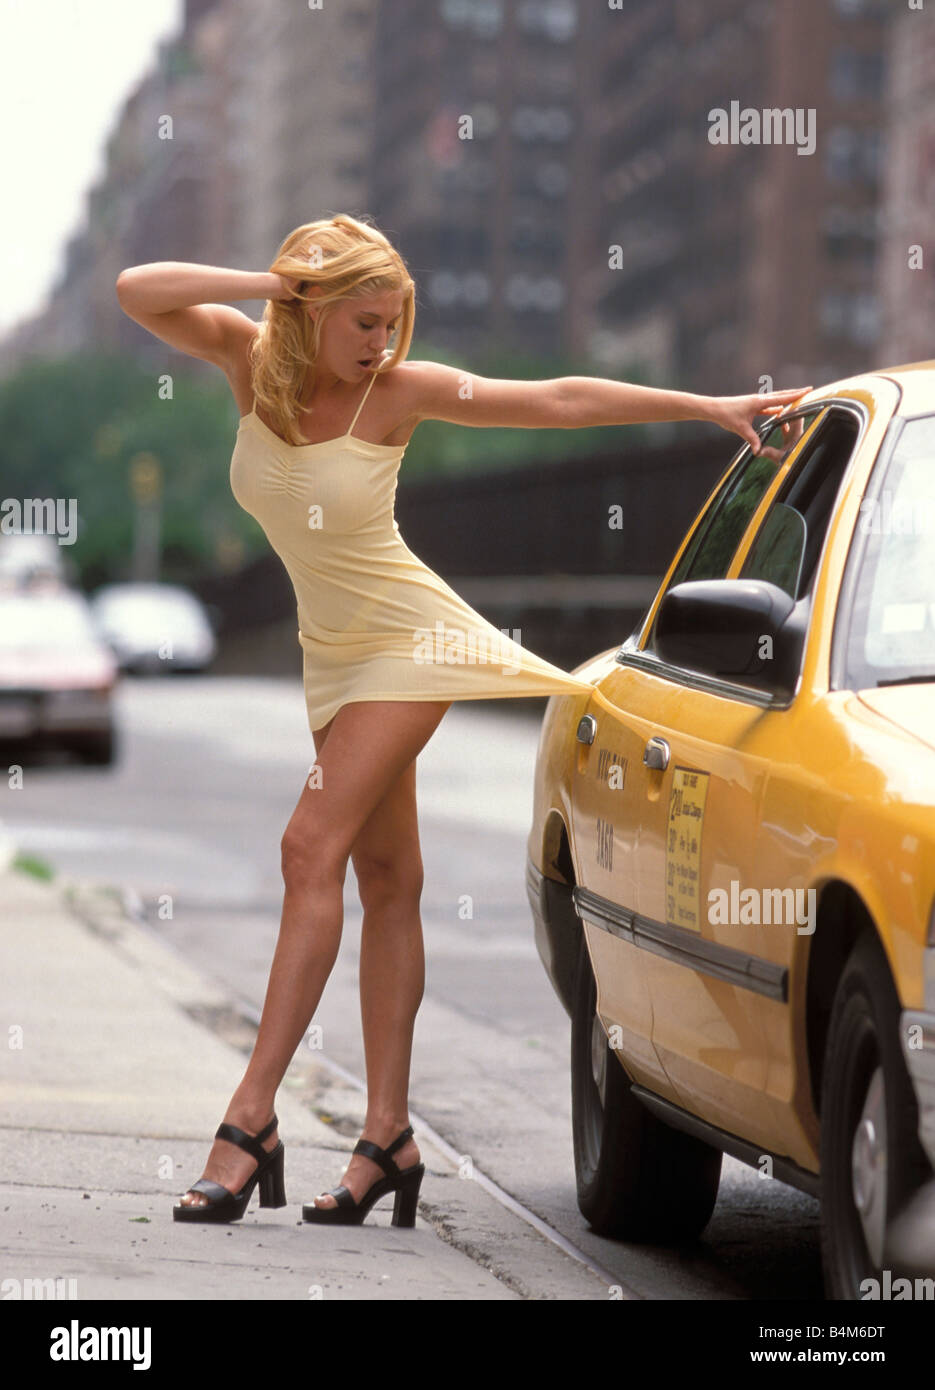 woman-in-yellow-dress-caught-by-a-taxi-s